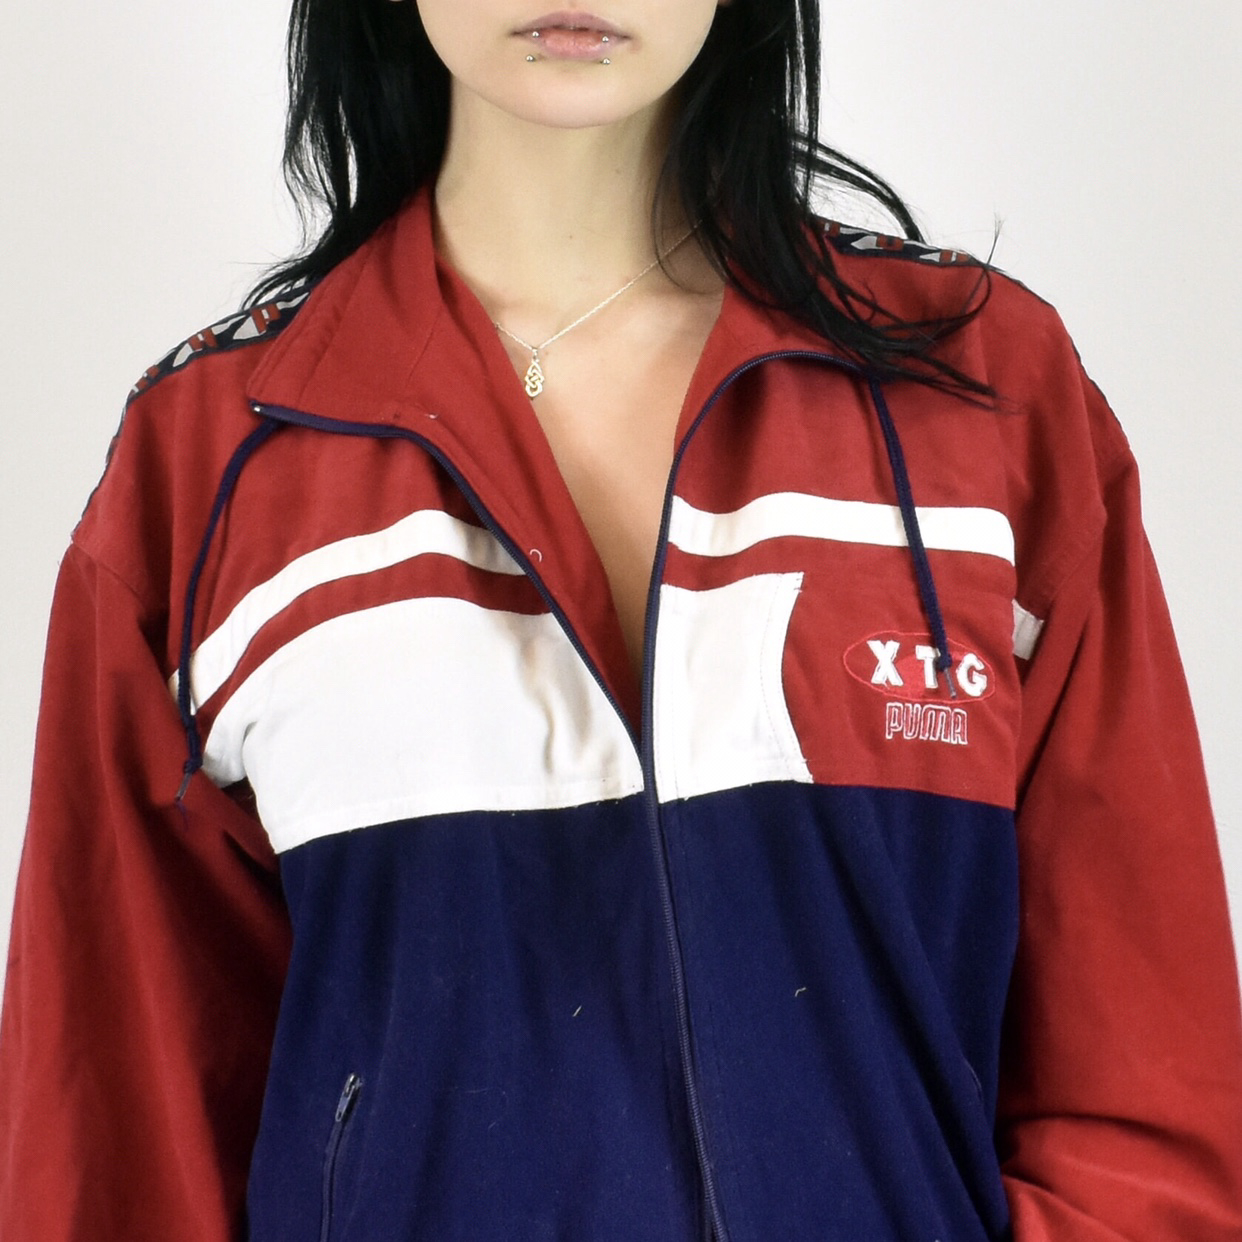 406130653 Unisex Vintage Puma tracksuit track jacket in navy blue, red and white size  L